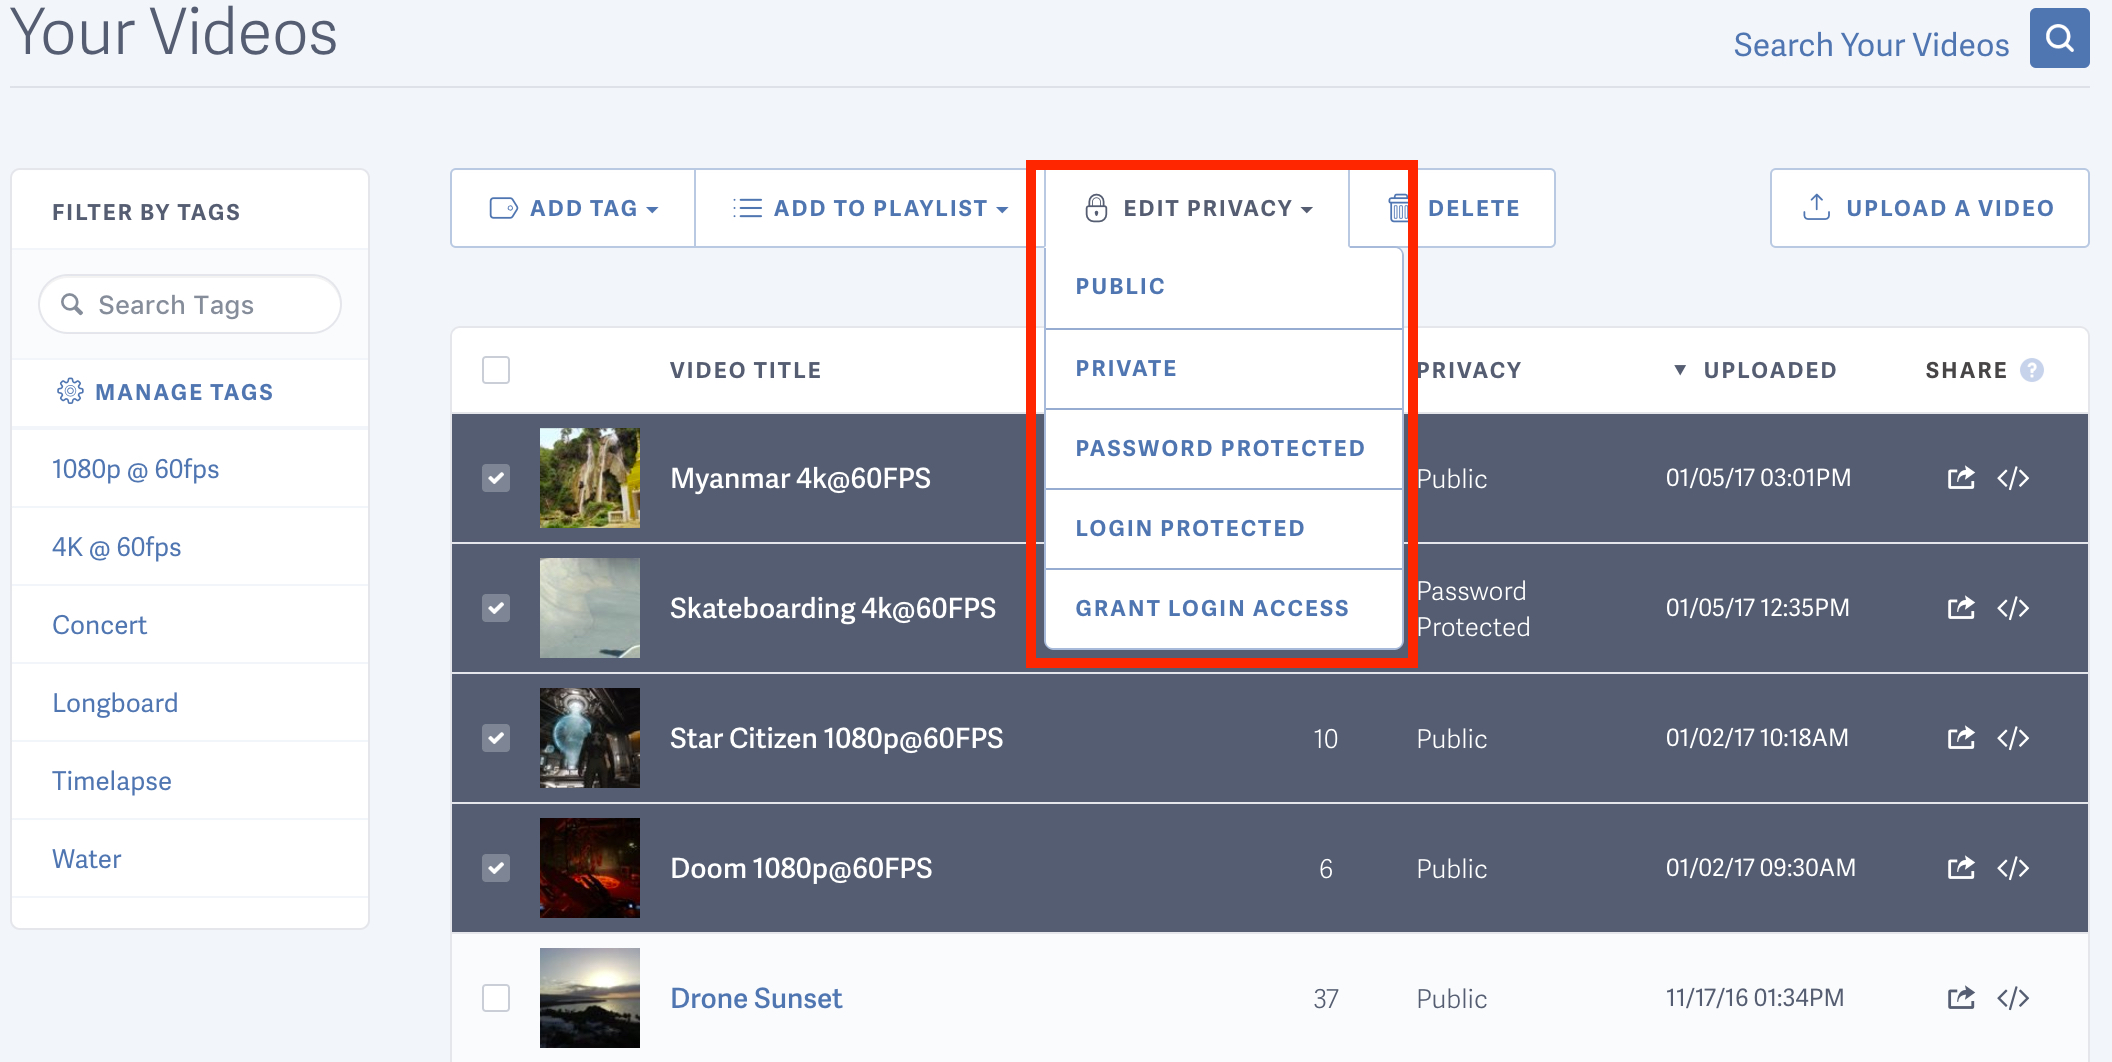 Select the new privacy setting for your videos hosted by SproutVideo